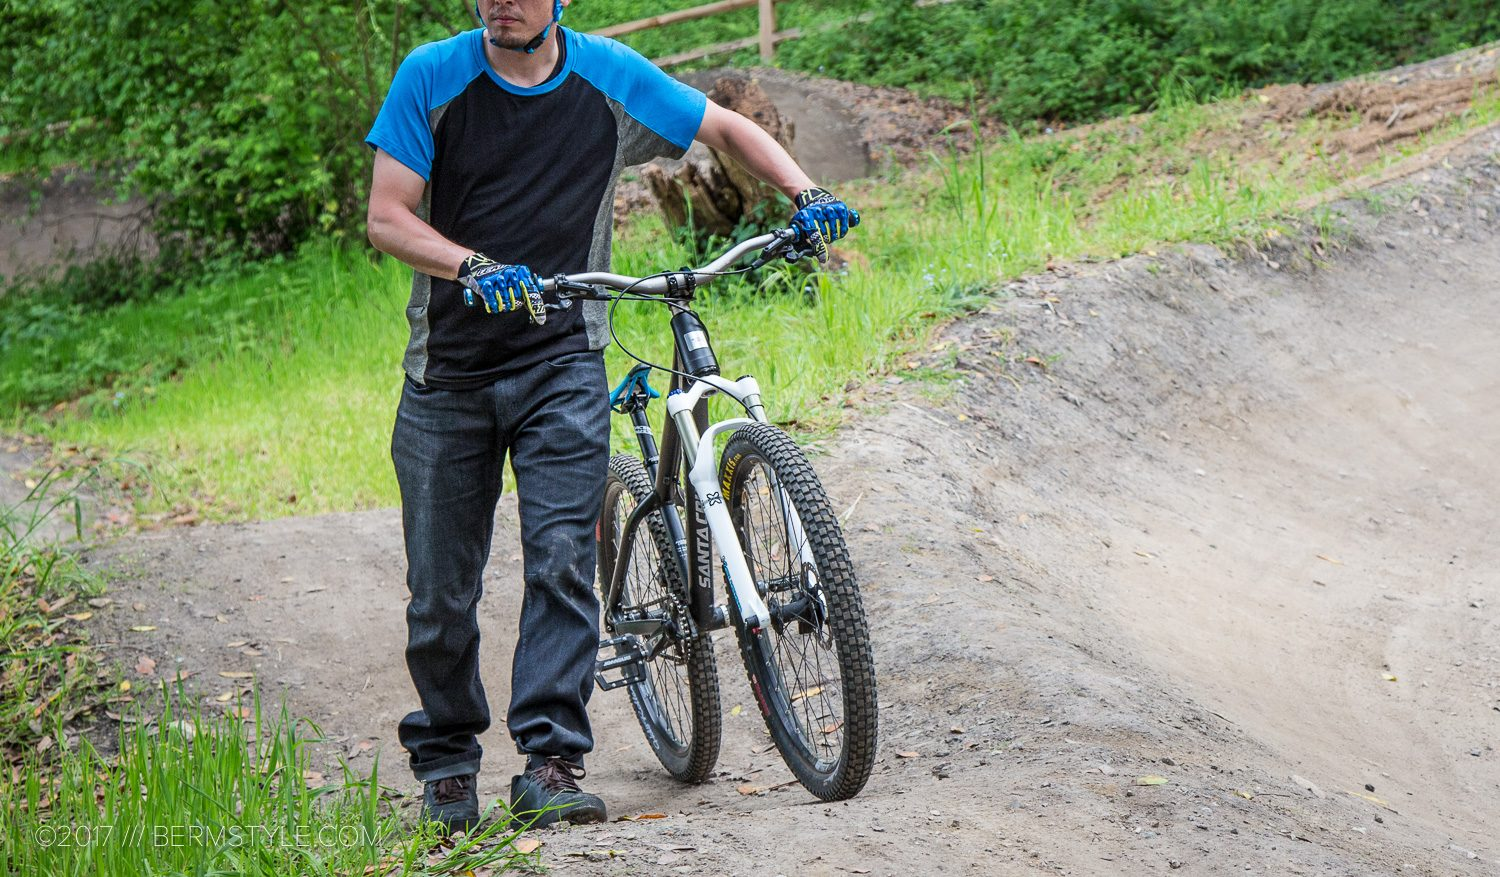 Getting the ClubRide Cog Jeans dirty at the Harvey West Park Pump Track in Santa Cruz, California.